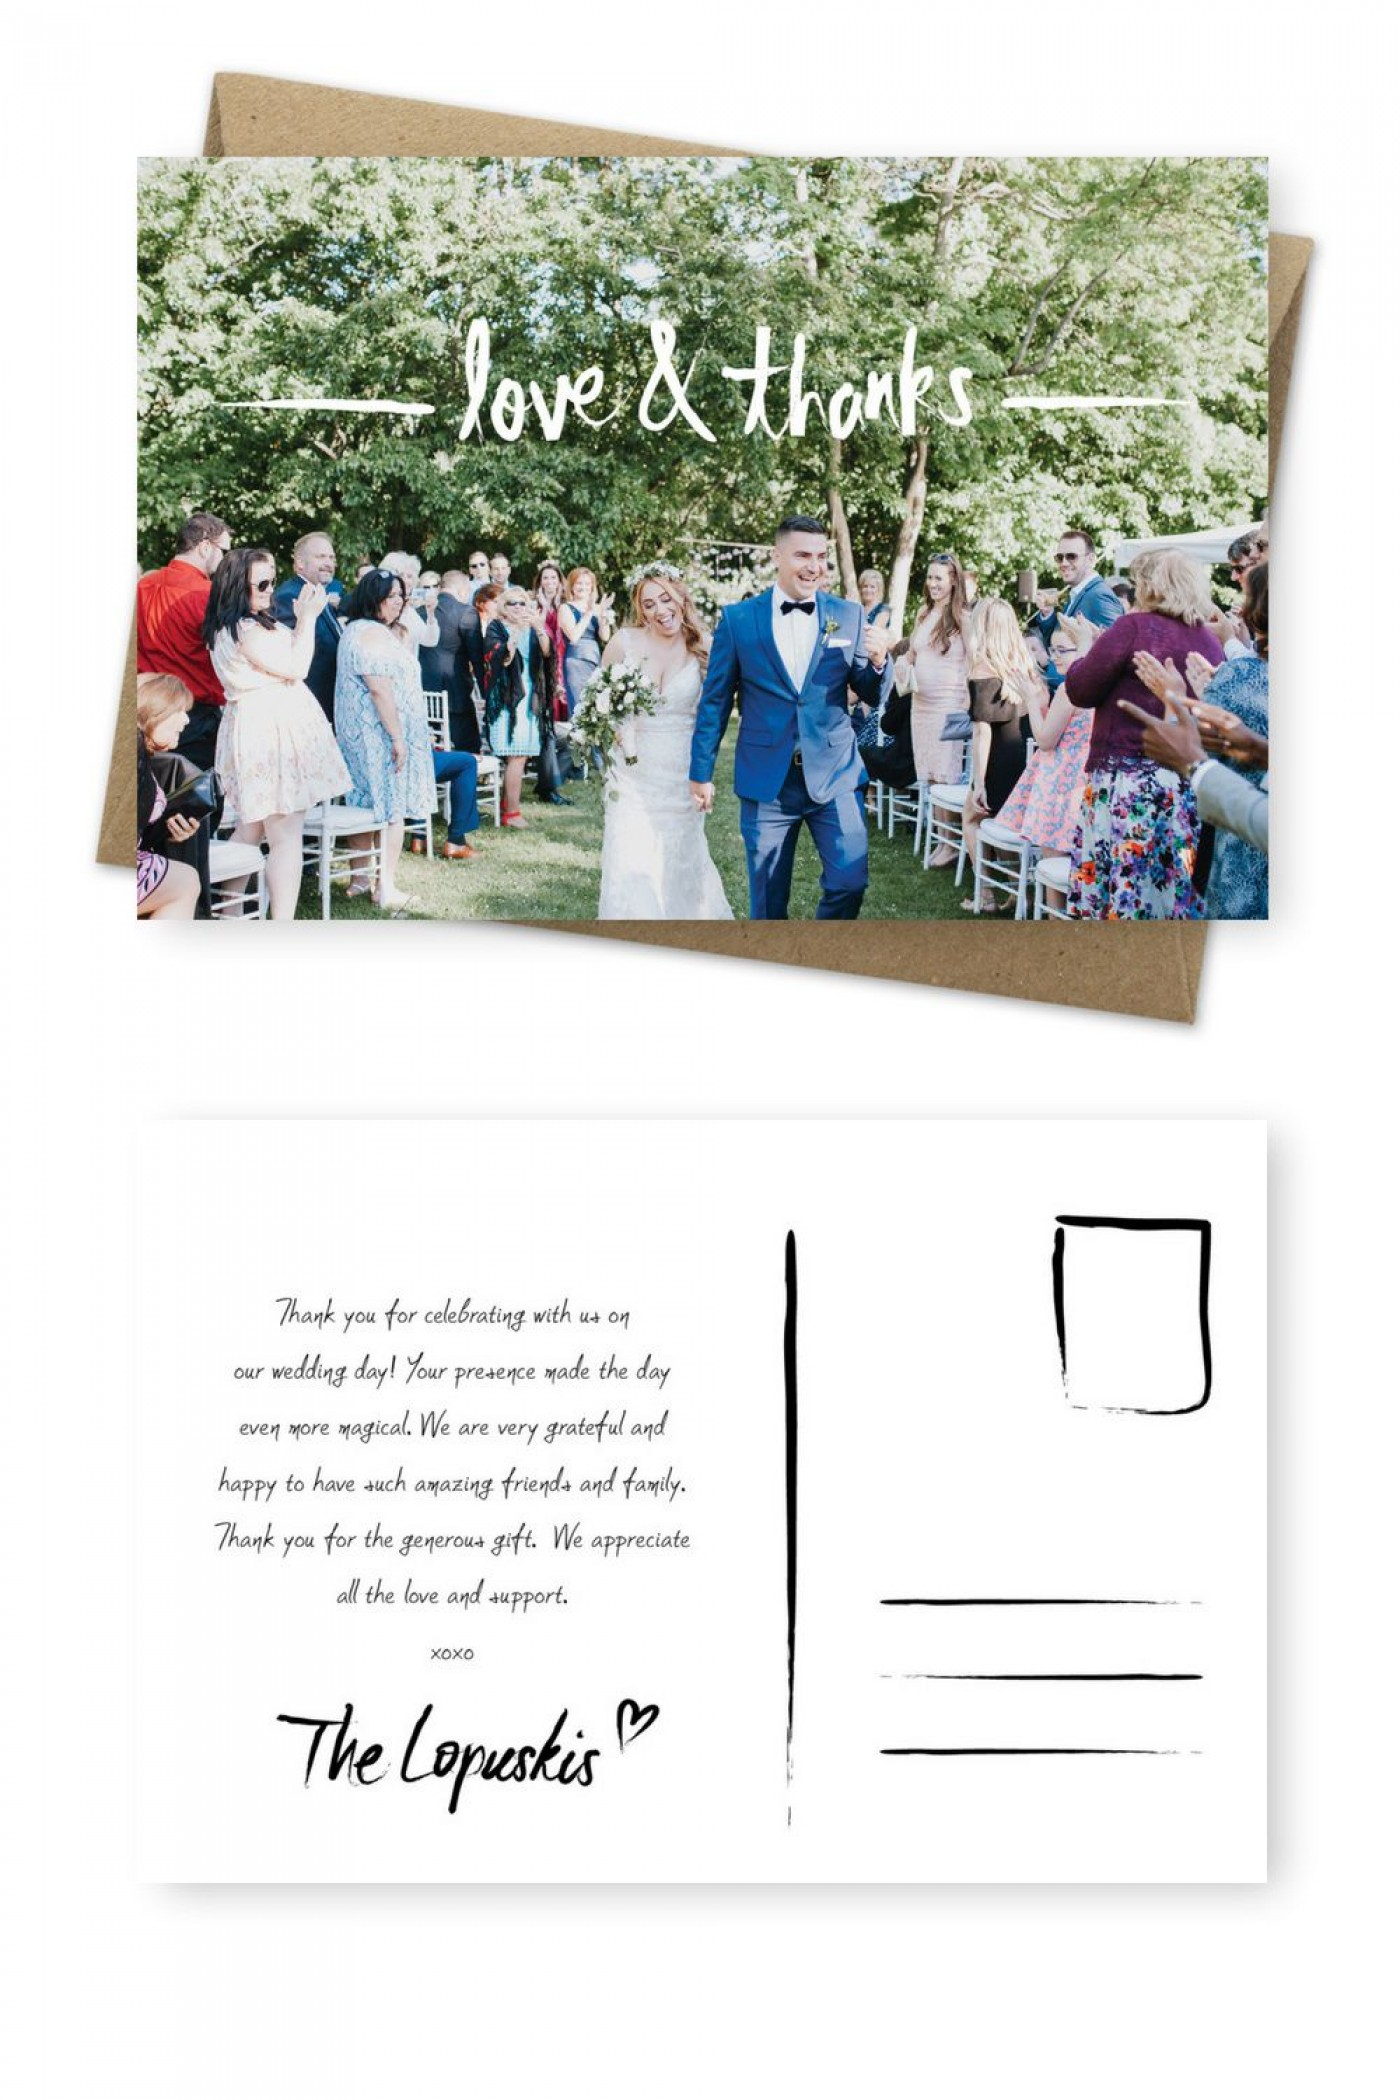 001 Unique Wedding Thank You Card Template Image  Photoshop Word Etsy1400